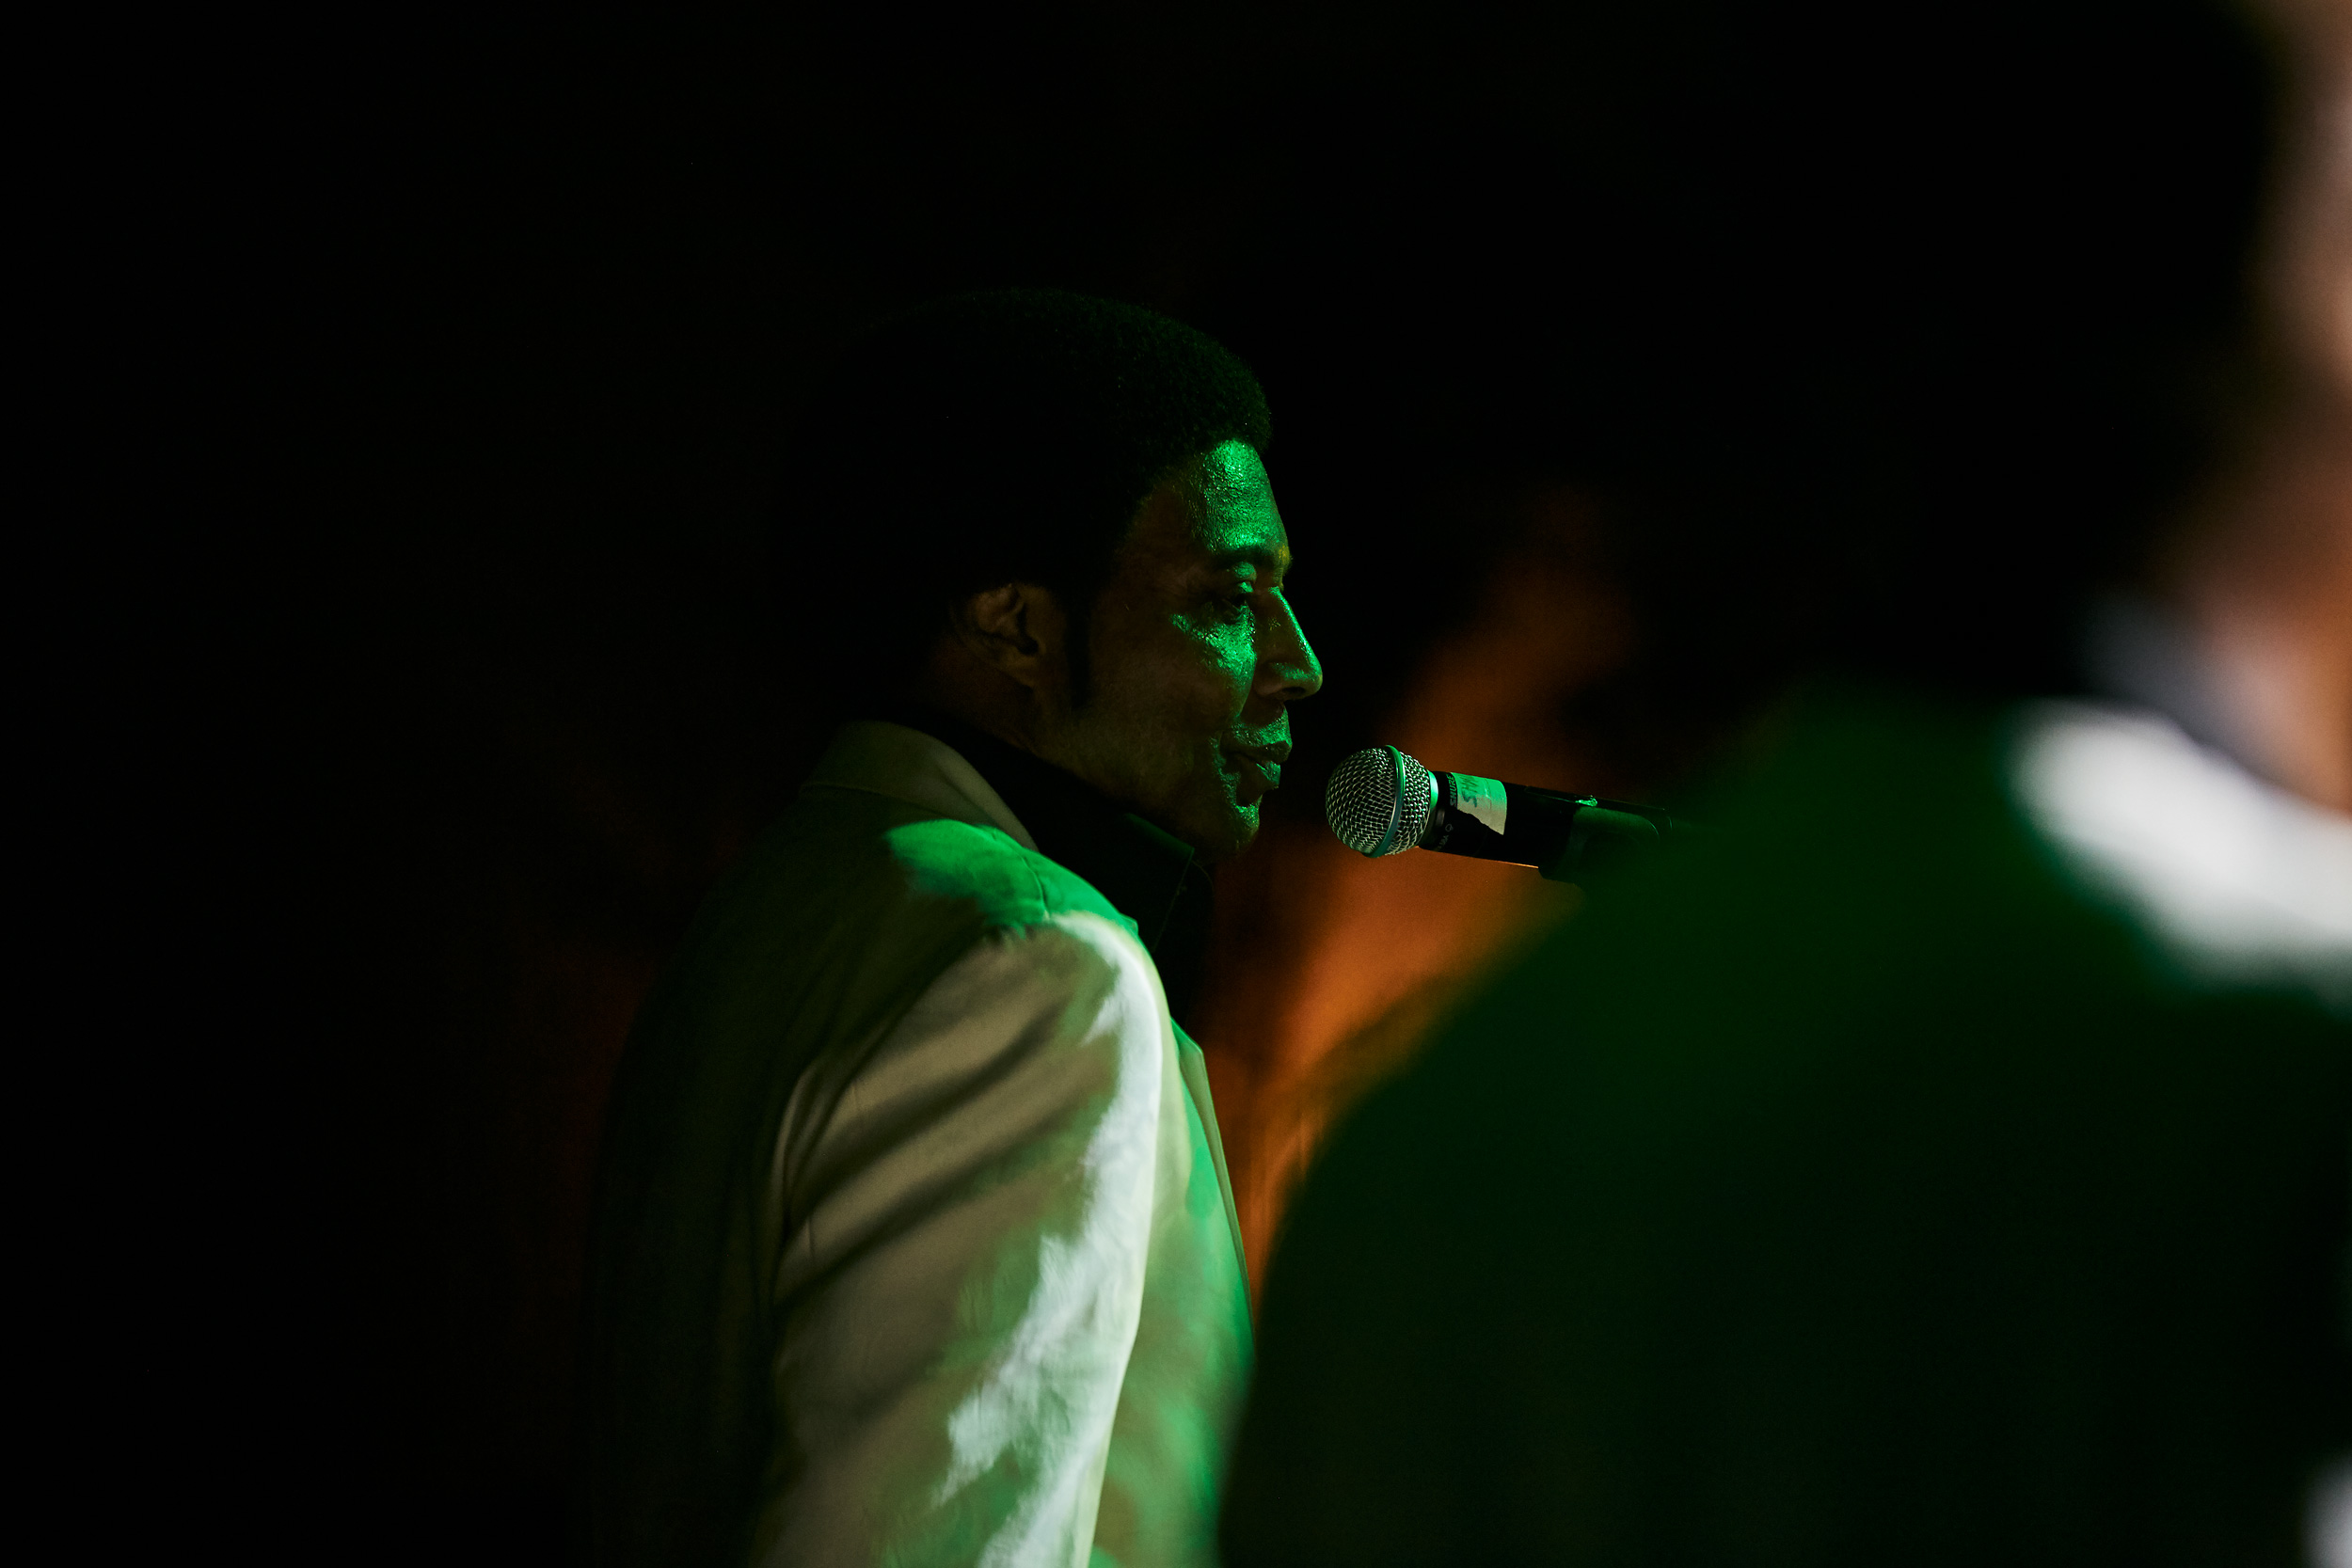 Glenn Leonard singing on stage, washington dc portrait photography